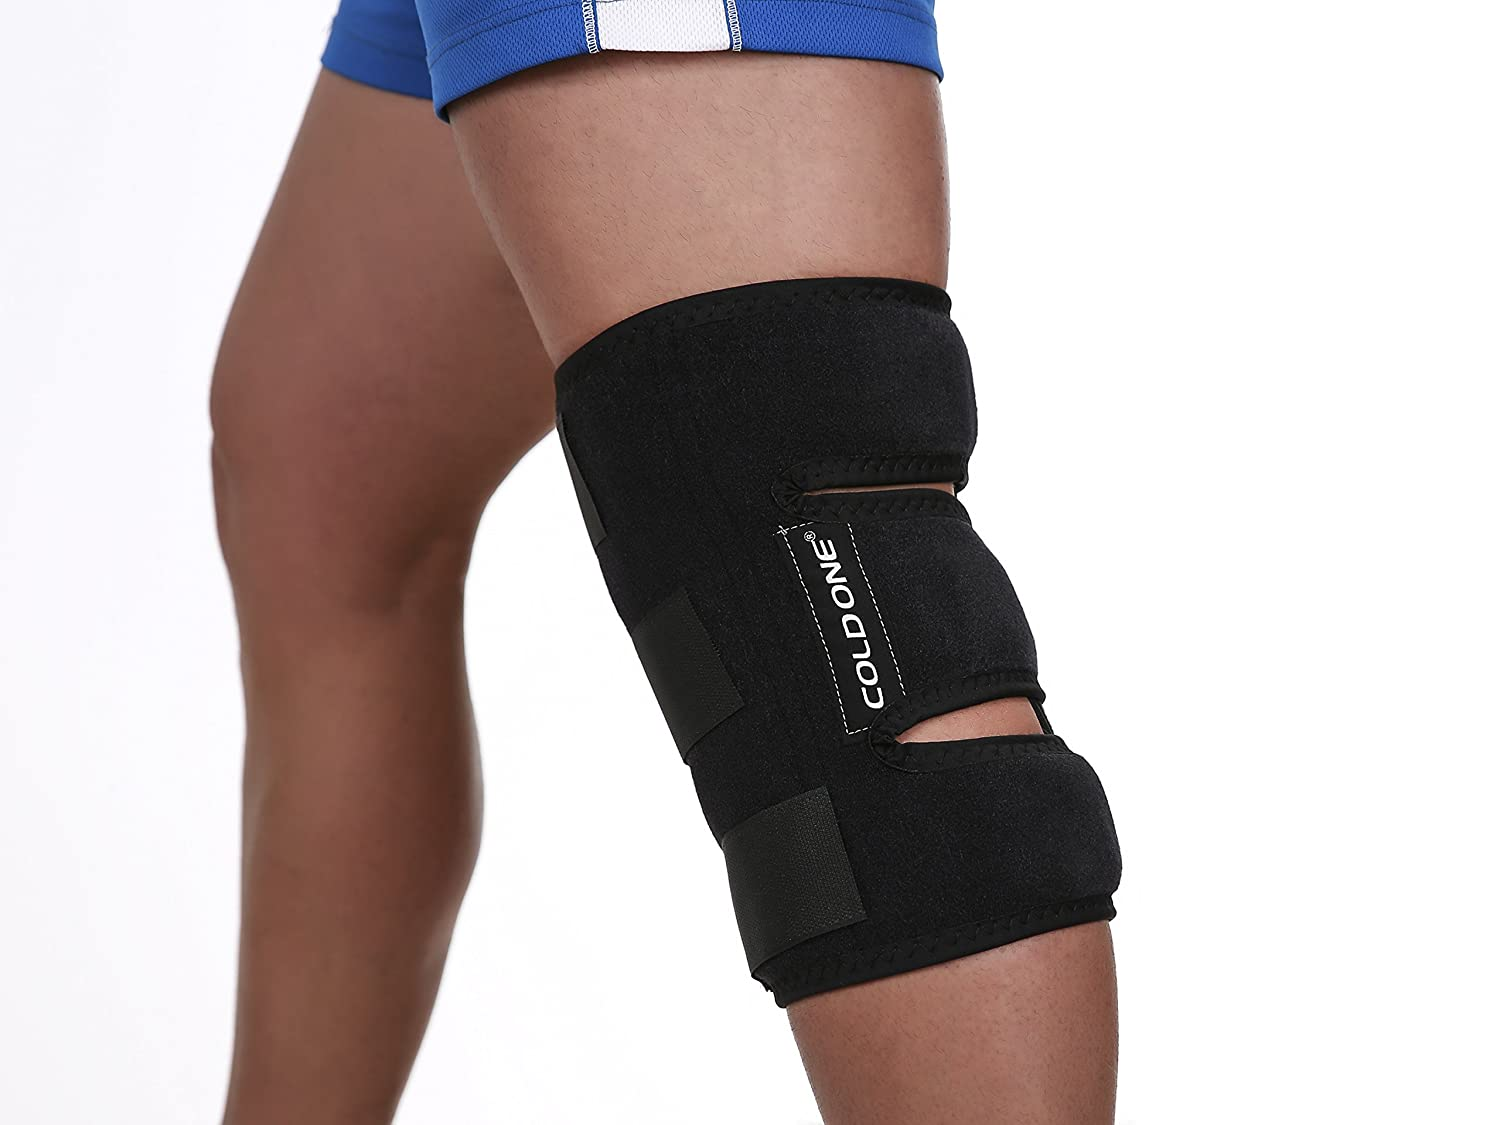 Cold One Knee Ice Pack + Compression